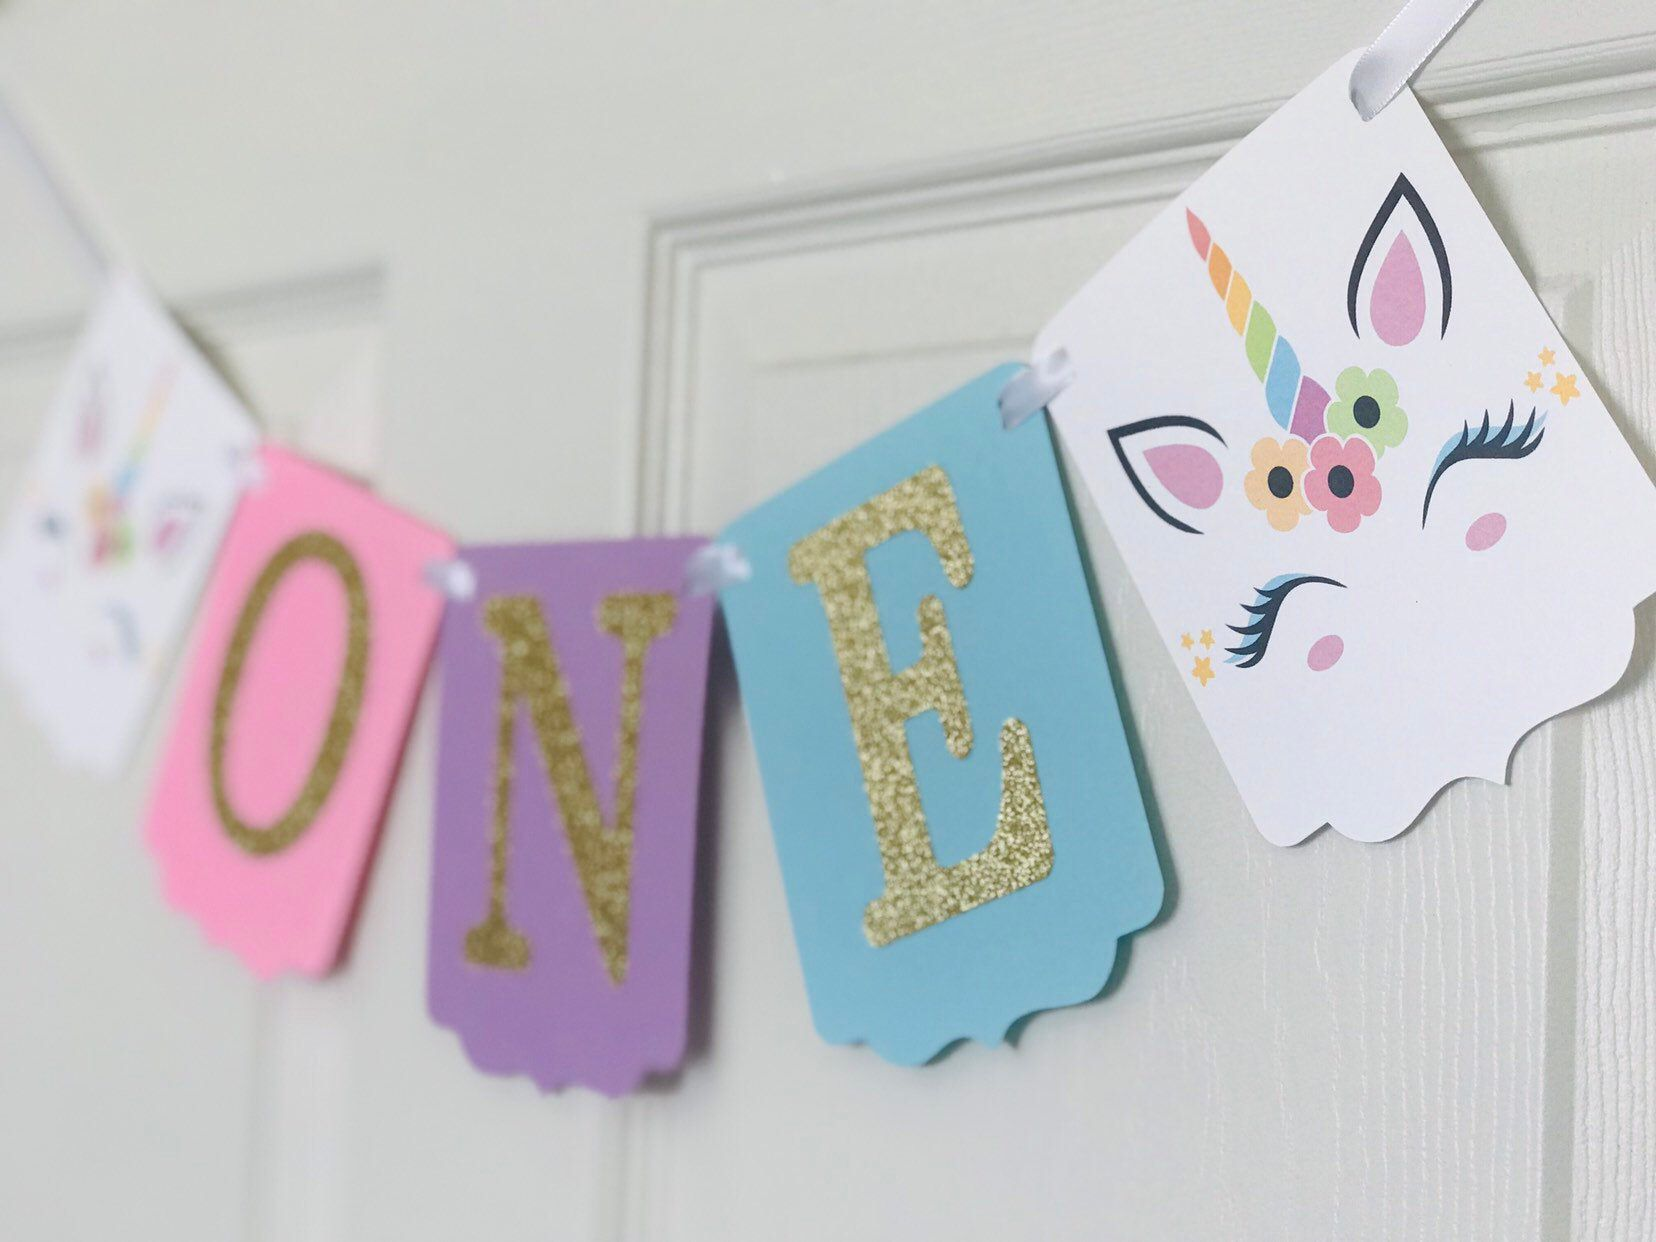 Unicorn Theme One Banner Unicorn Theme High Chair Banner Unicorn Theme 1st Birthday Banner Unicorn Party Decoration Unicorn High Chair - Unicorn party decorations, Kids birthday party decoration, 1st birthday banners, Unicorn theme party, Unicorn party, Birthday banner - One High Chair Banner that would look great on your upcoming Unicorn Theme Party   Current PROCESSING TIME is about 24 business days after purchase then will ship via USPS First Class (35 business days) If you need it sooner, pls  message me   Each panel is 5 5  tall and 4  wide  Banner is made from high quality premium cardstock and strung with a white satin ribbon  Letters are made from gold glitter cardstock  Banner comes assembled and ready to hang Want a different color of cardstock  just message me, I'll be glad to assist you  Thank you for stopping by!